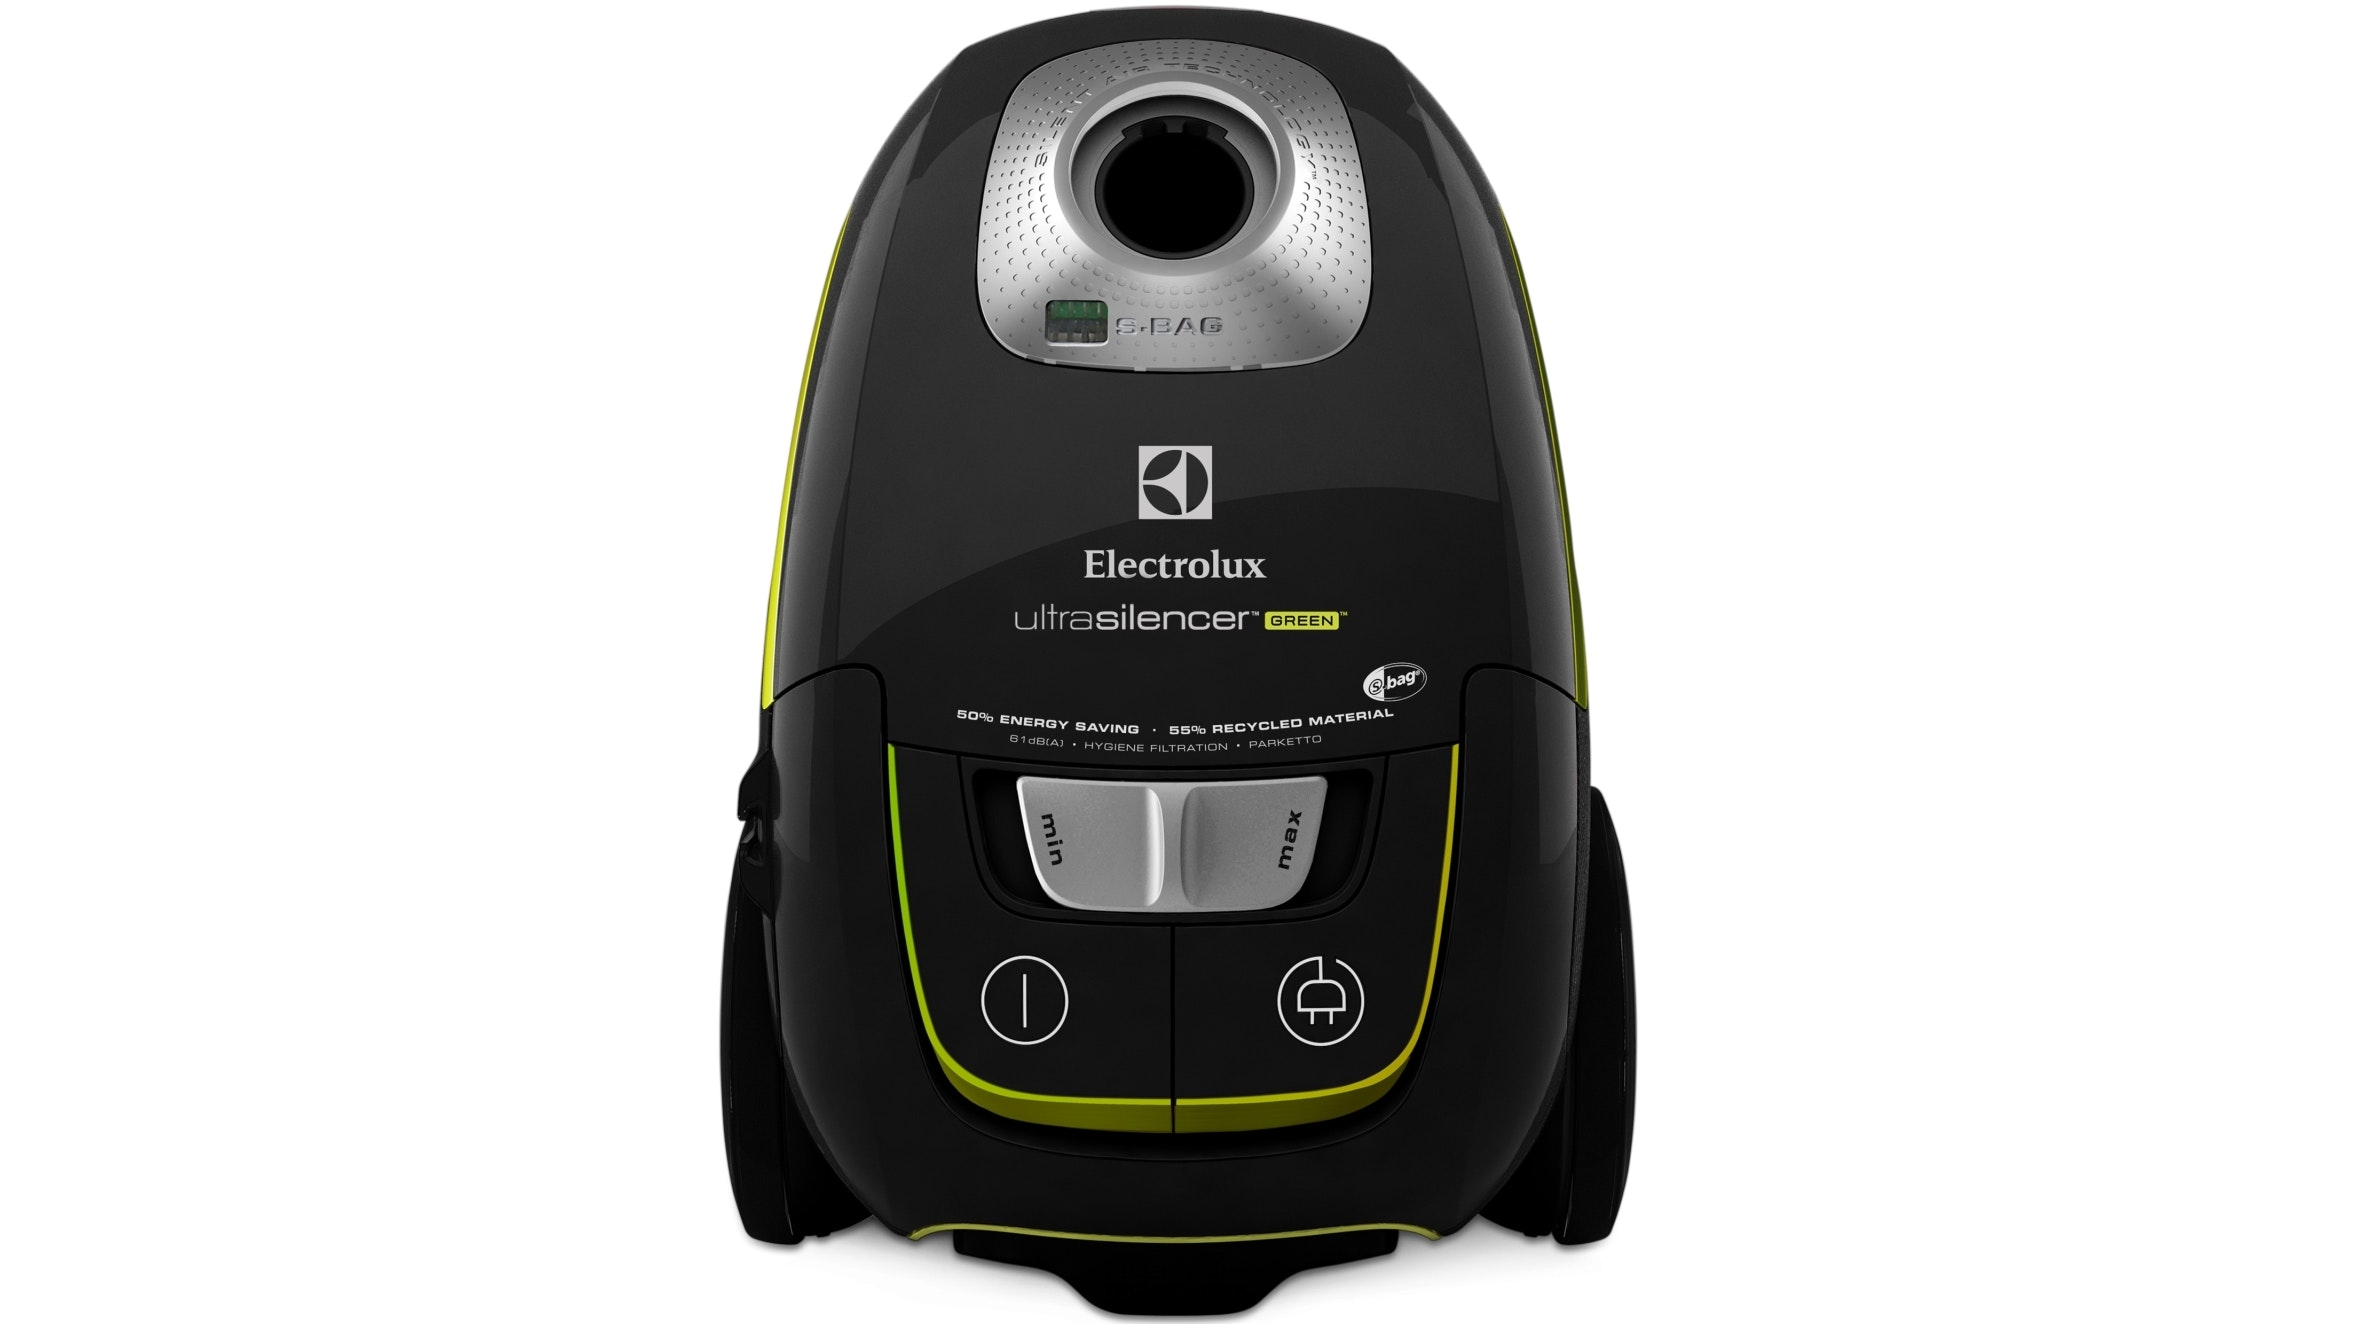 Electrolux Ultrasilencer Green Vacuum Cleaner Black